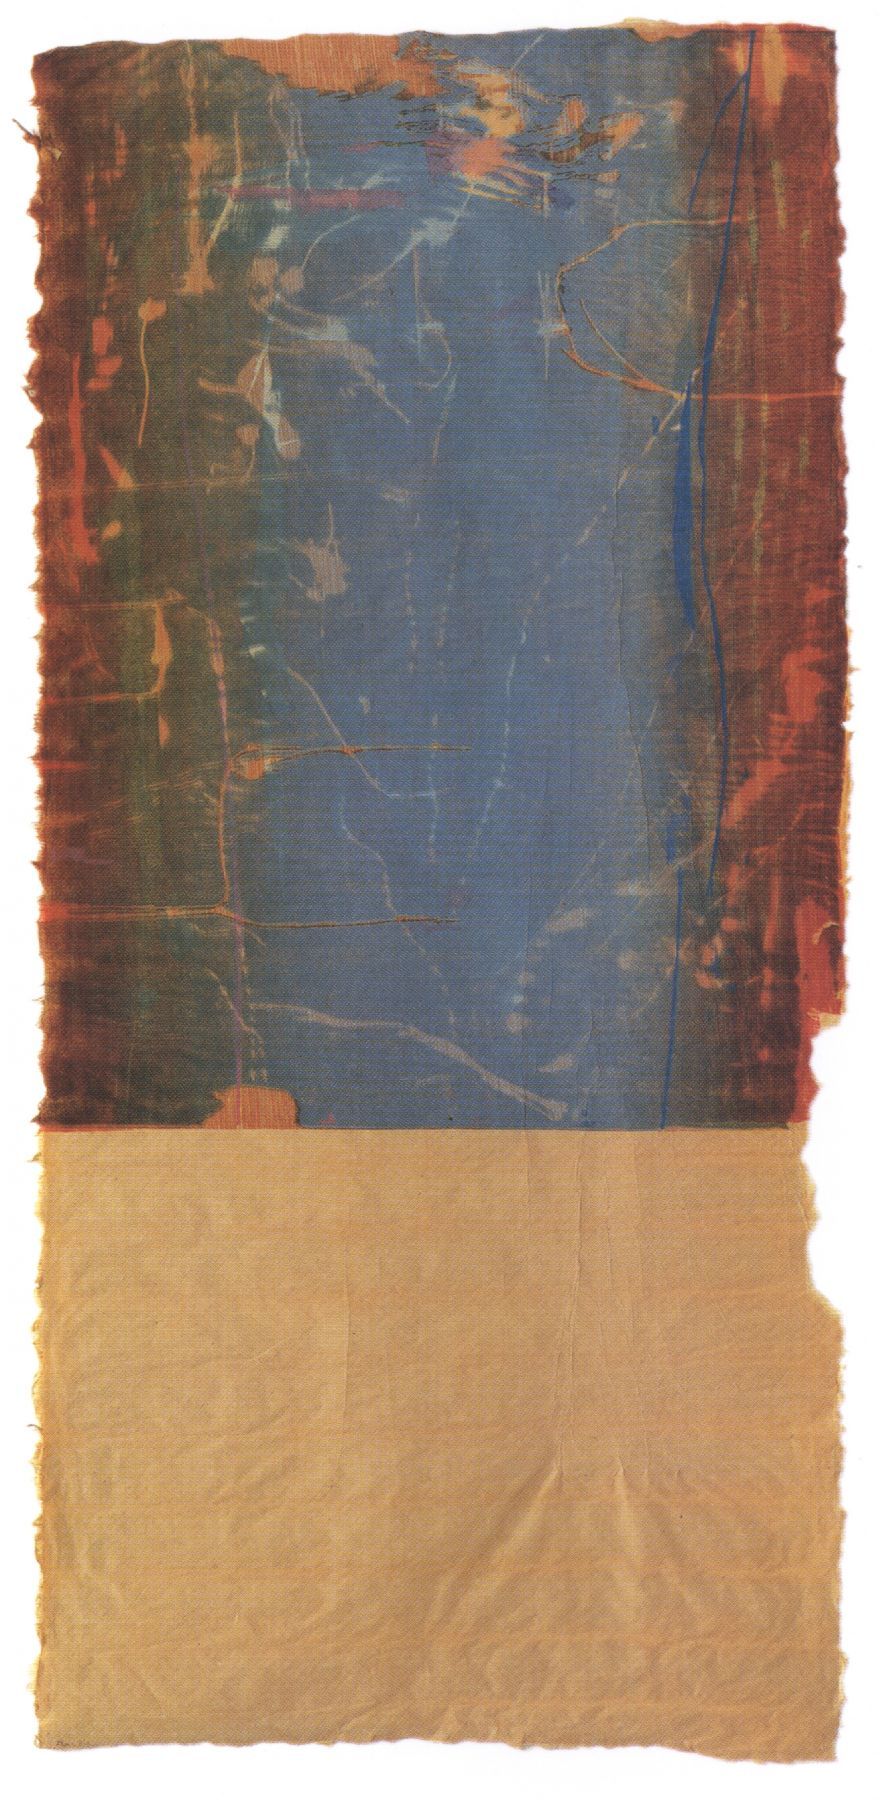 Helen Frankenthaler Trial proof 20